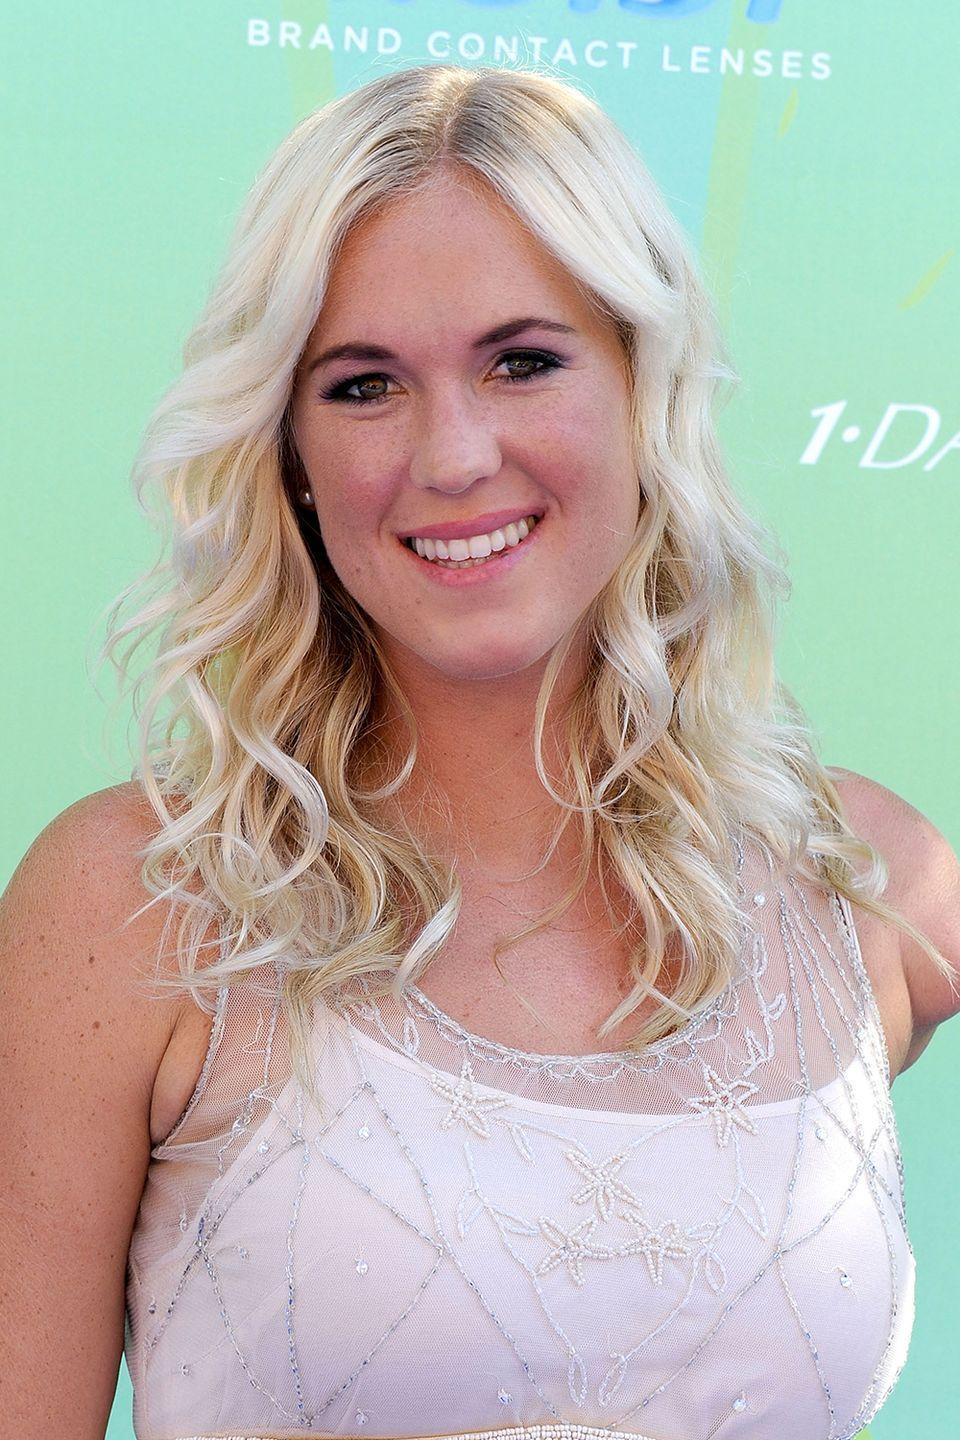 """<p>Bethany Hamilton, best-known for losing her arm during a shark attack at the age of 13 and inspiring the movie <em>Soul Surfer</em>, is outspoken about waiting until marriage to have sex. """"I think growing up I was blessed to have parents that stayed together, and have that husband and wife image of I want—an awesome husband one day that will love and support me until I die,"""" she said <a href=""""https://www.premaritalsex.info/bethany-hamilton-story-only-guy-ive-ever-kissed/#.WtP5zROPLOQ"""" rel=""""nofollow noopener"""" target=""""_blank"""" data-ylk=""""slk:in her book"""" class=""""link rapid-noclick-resp"""">in her book</a>.</p><p>She continued, """"And I also wanted to honor God with the way that I approached [marriage]. I definitely was patient and I didn't mess around and [my husband is] the only guy I've ever kissed.""""</p>"""